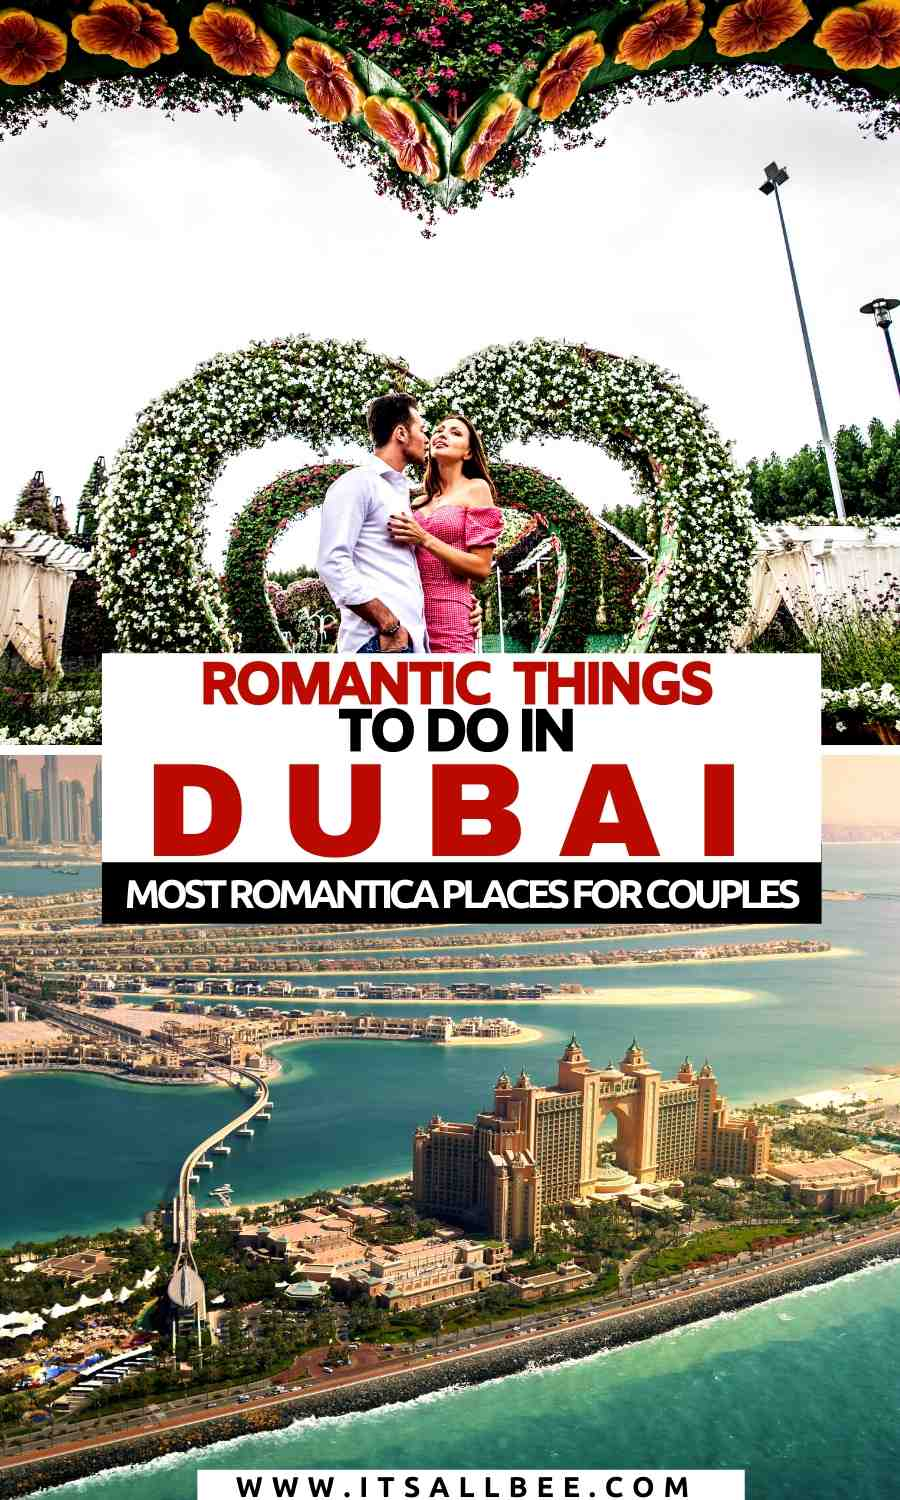 Best romantic restaurants in Dubai